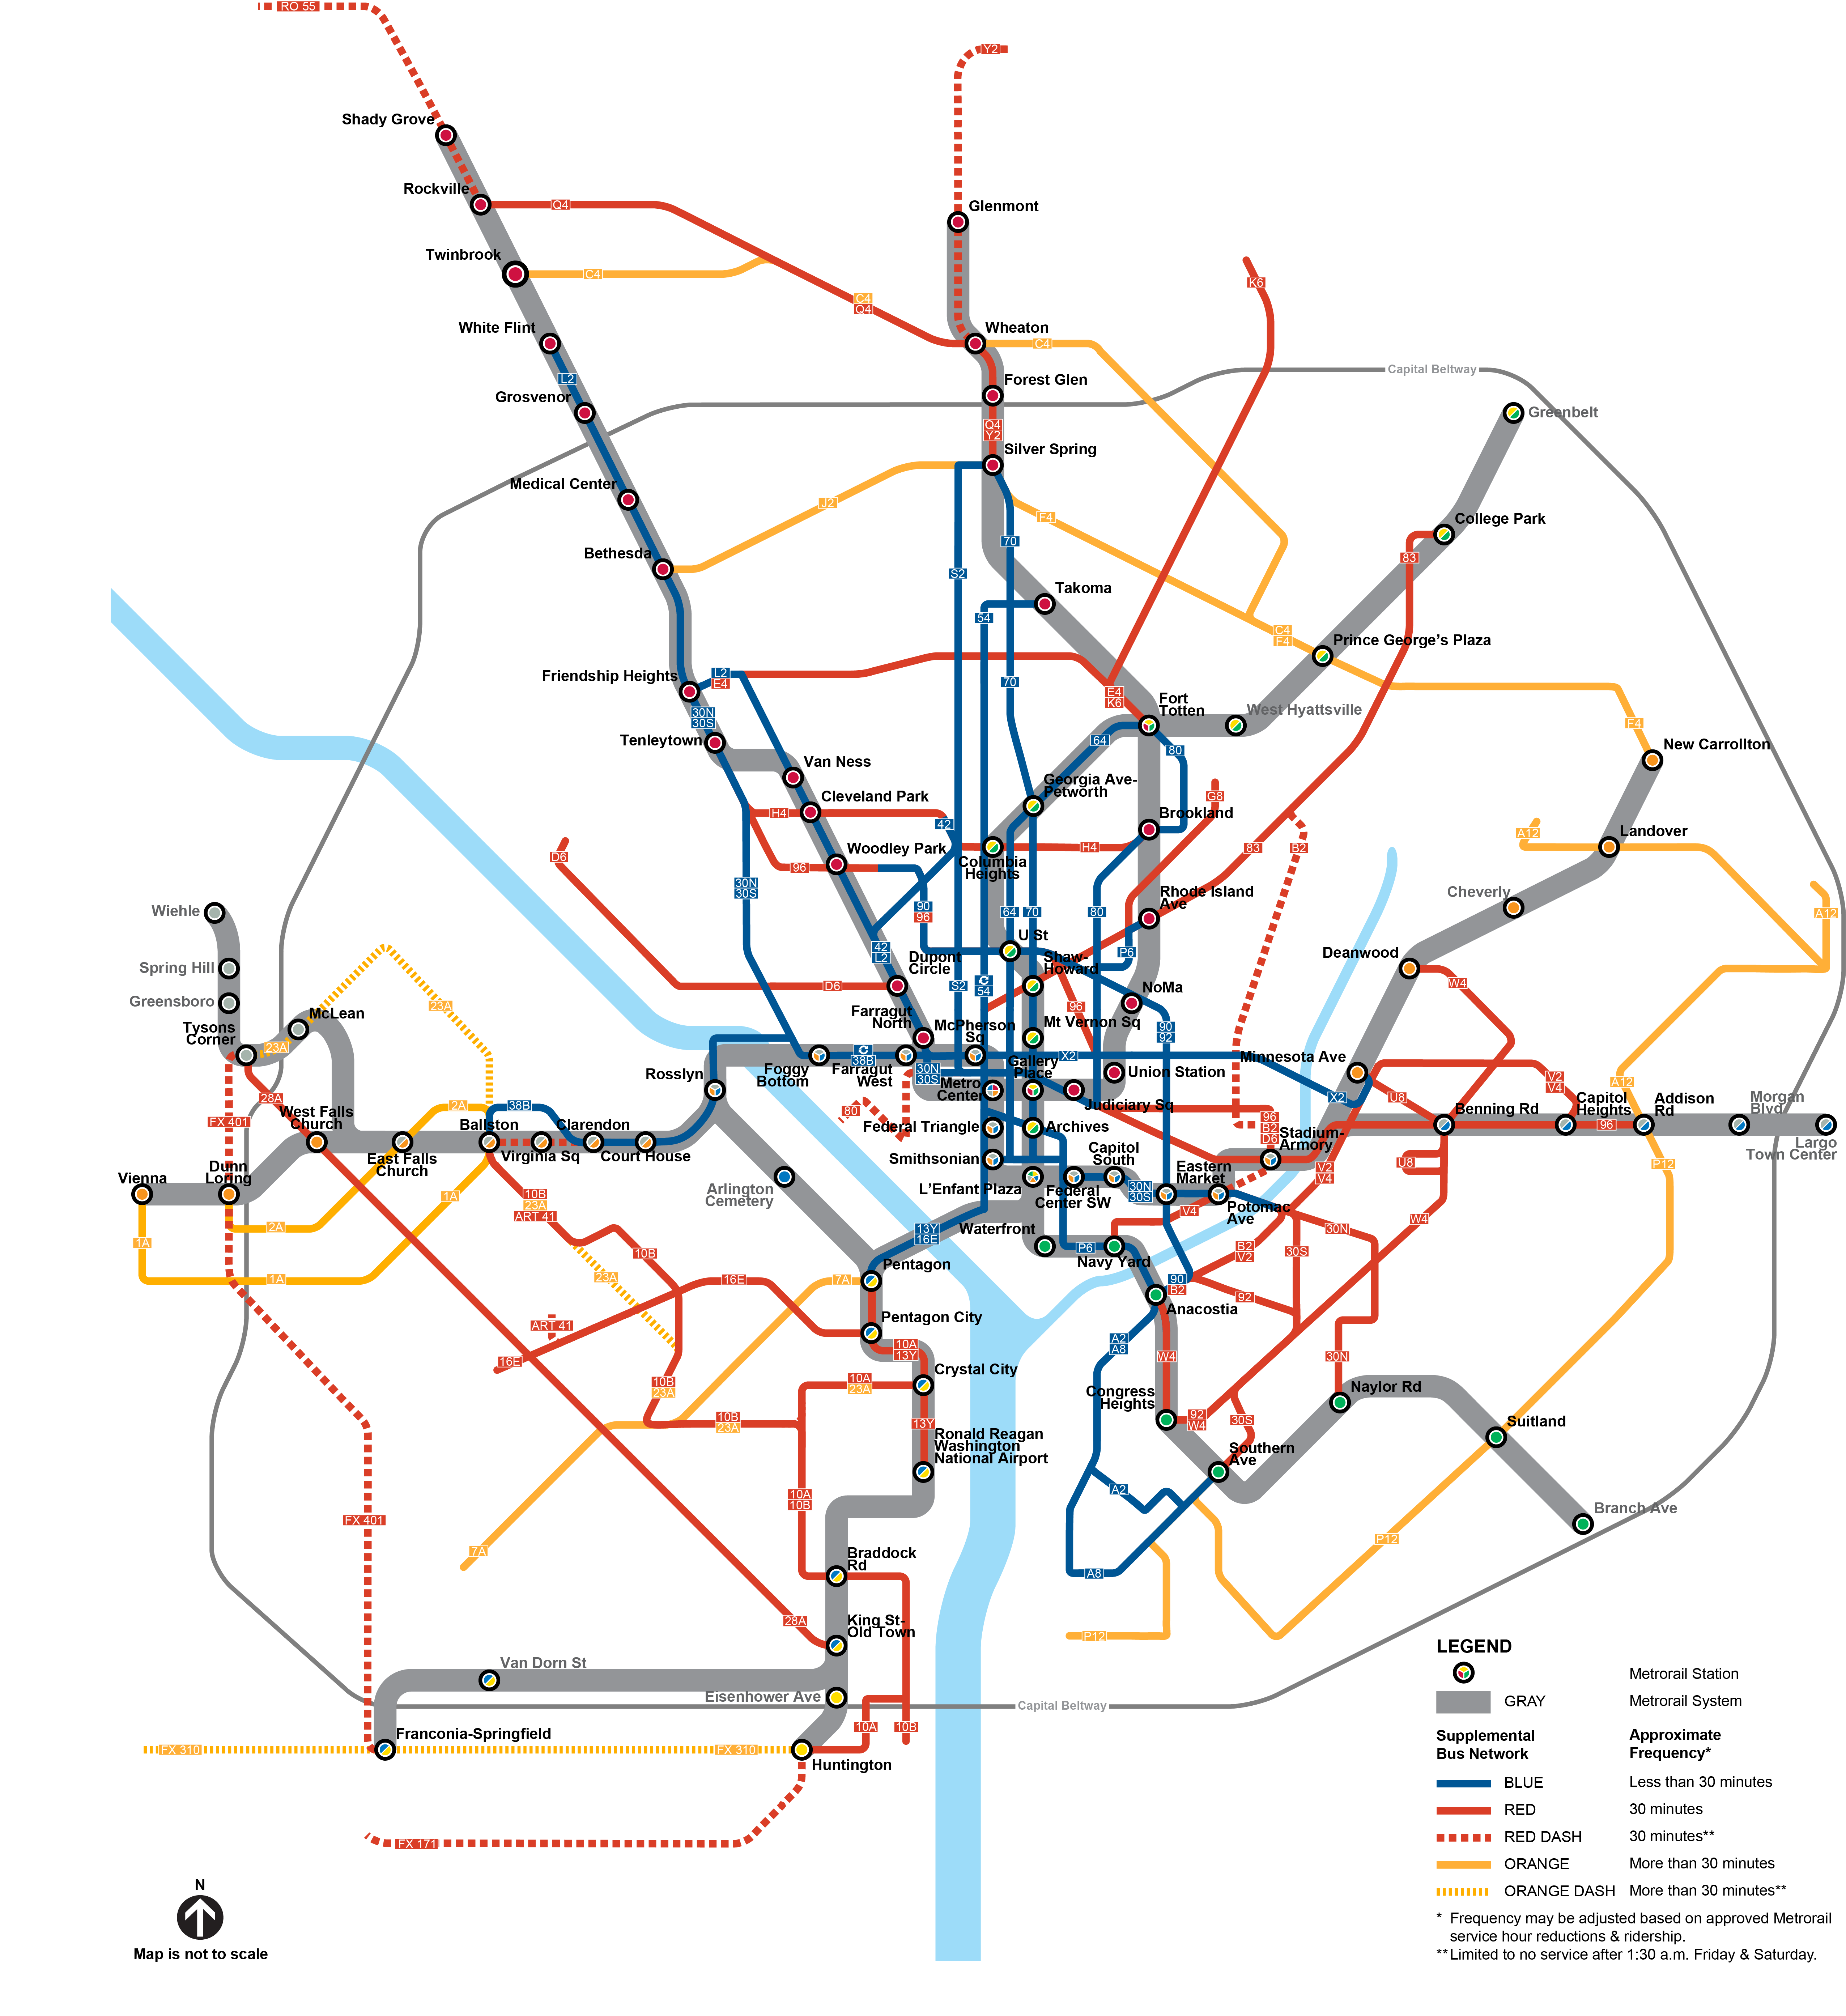 Proposed service map for Metrobus under proposed Metrorail hours